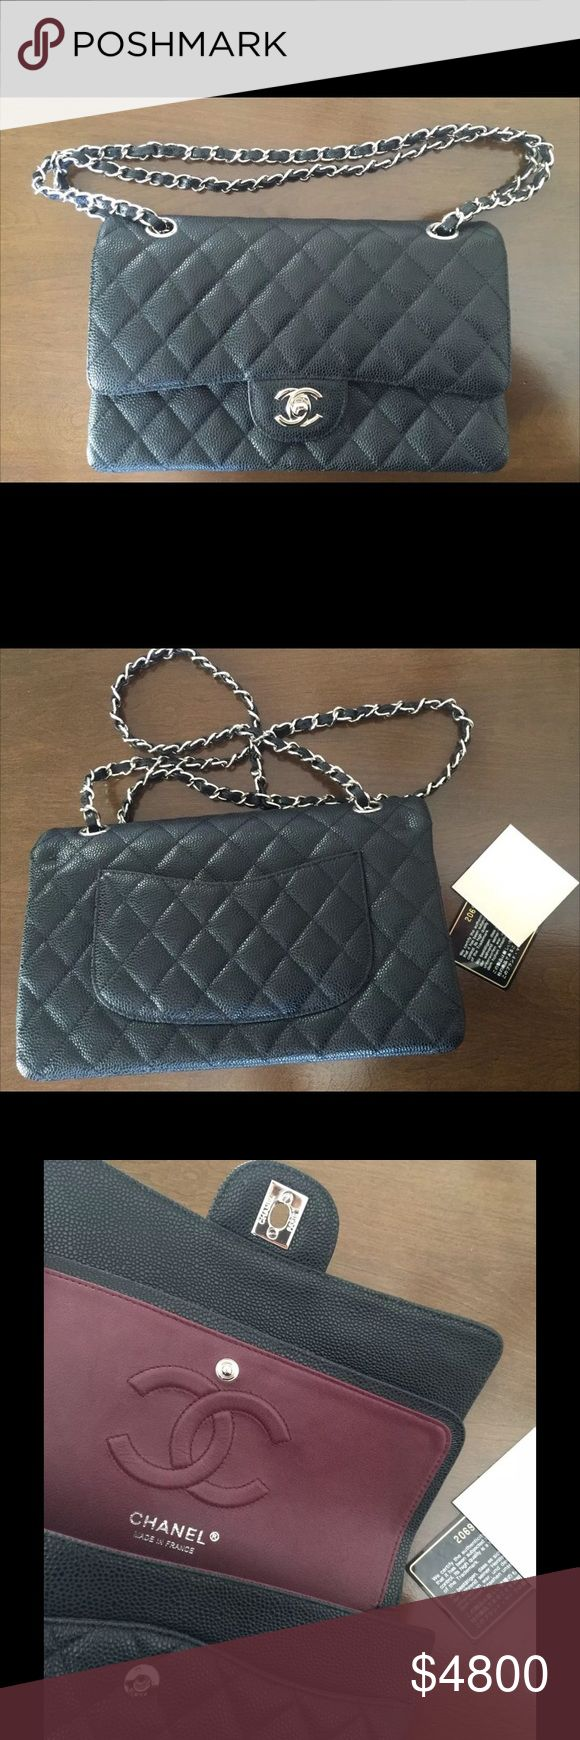 Auth Chanel double flap caviar medium silver HW Like new double flap bag caviar black leather and authentic!! Comes with black magnetic box, authenticity card and sticker, Chanel care folder and booklet as well as Chanel tissue paper and ribbon. Make me a deal I can't refuse. CHANEL Bags Crossbody Bags